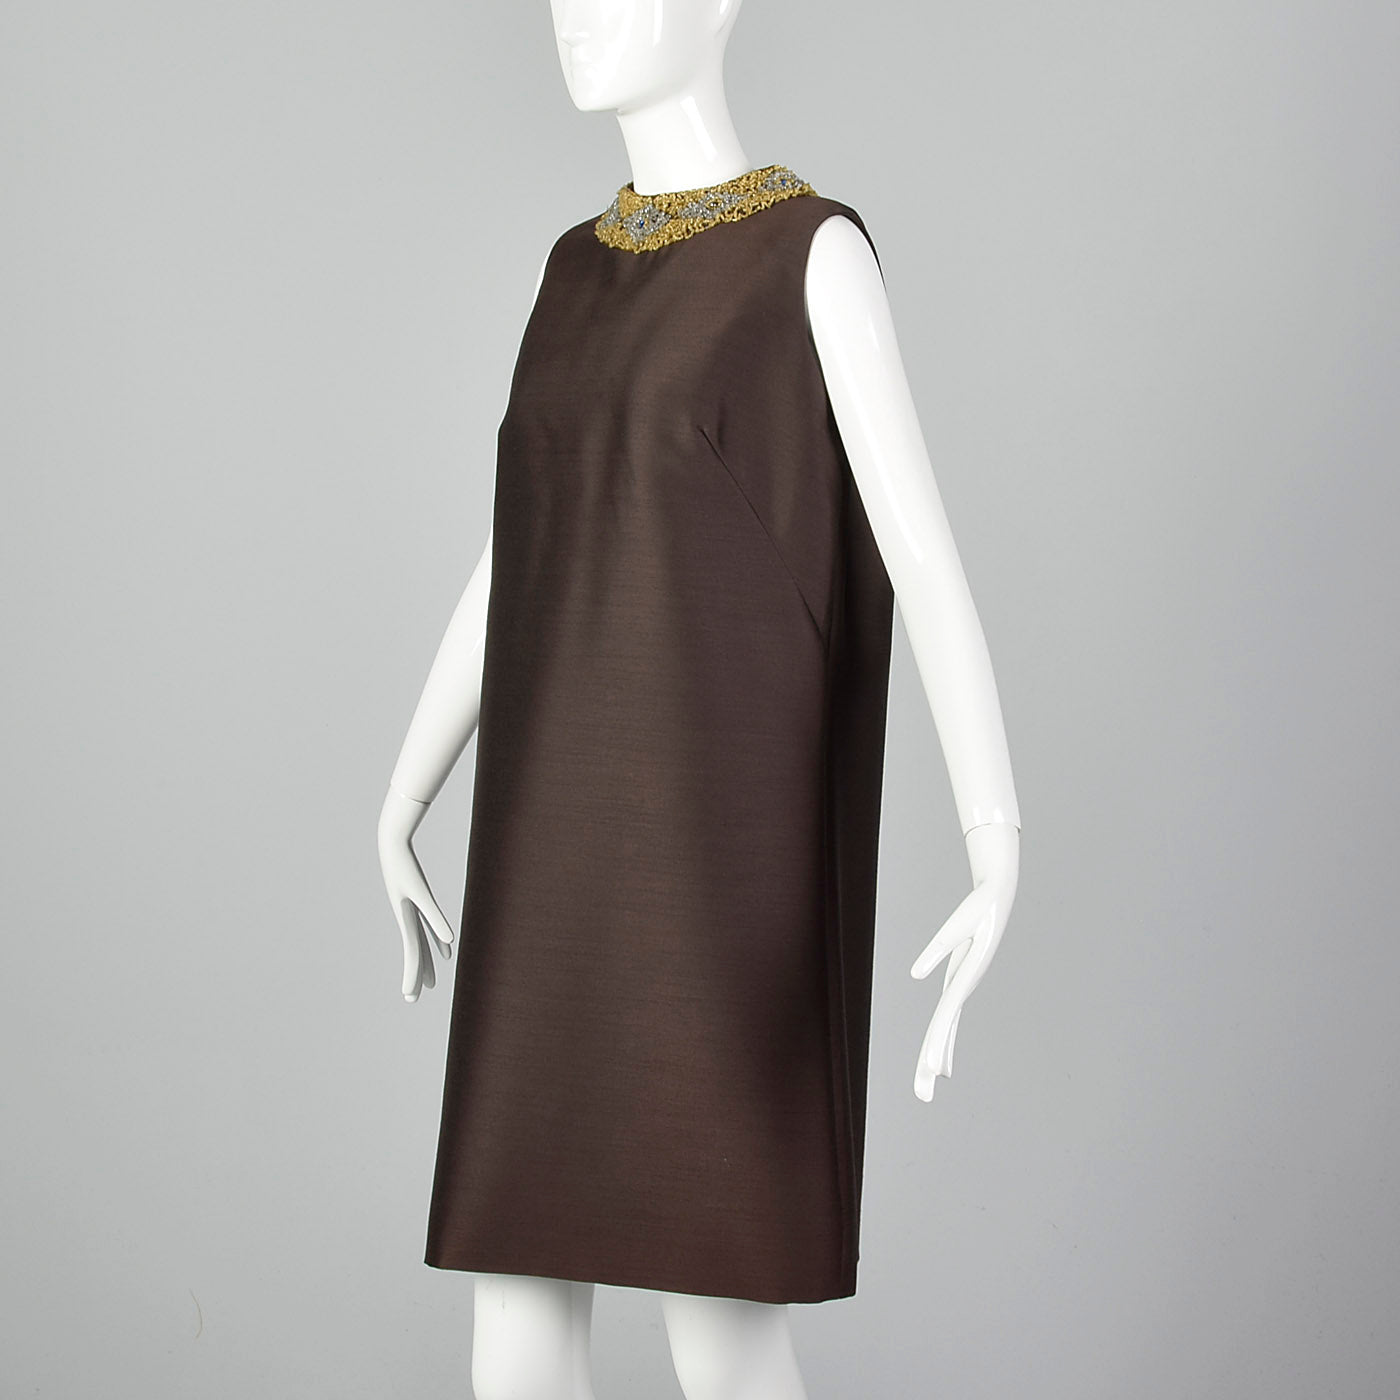 1960s Brown Shift Dress with Beaded Collar